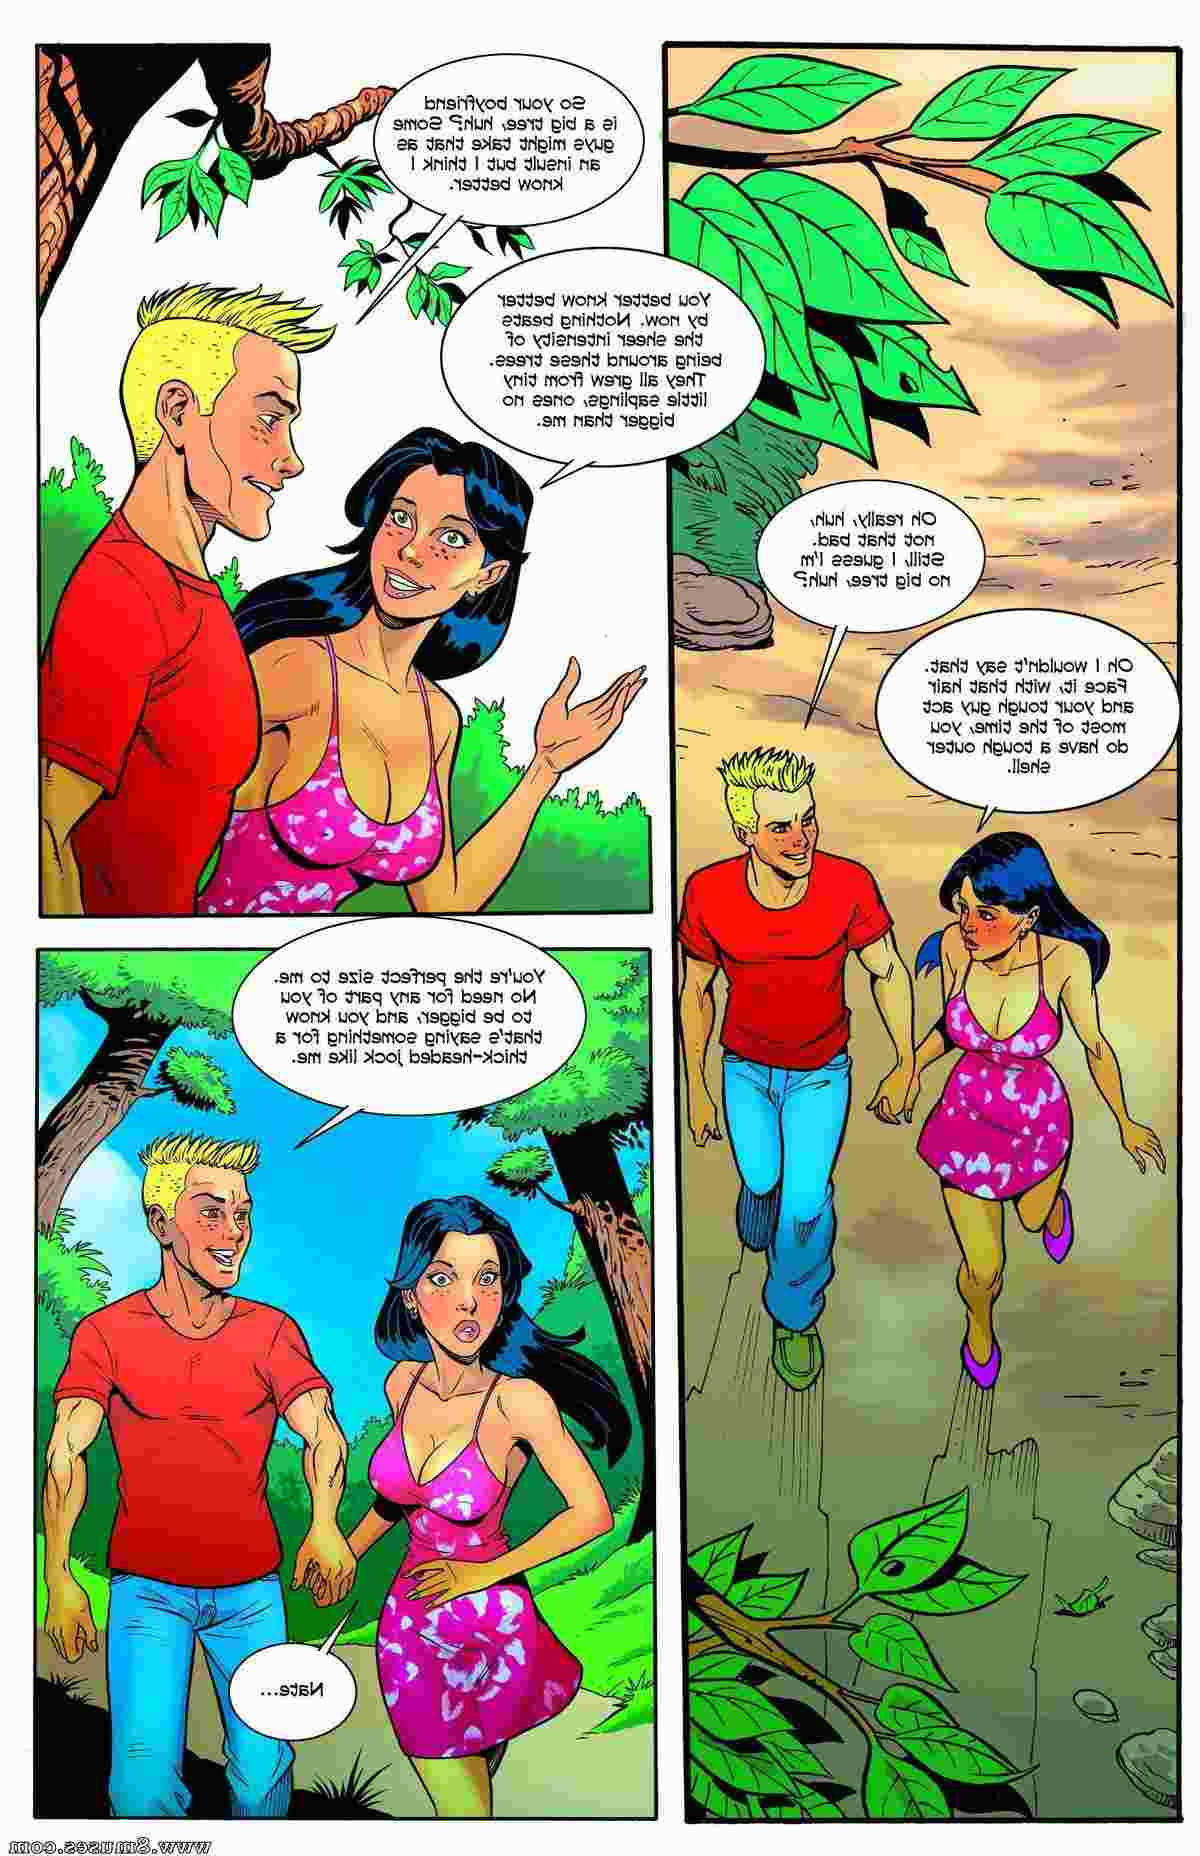 Giantess-Club-Comics/The-Legendary-Tree-Of-Paula-Bunyan The_Legendary_Tree_Of_Paula_Bunyan__8muses_-_Sex_and_Porn_Comics_4.jpg